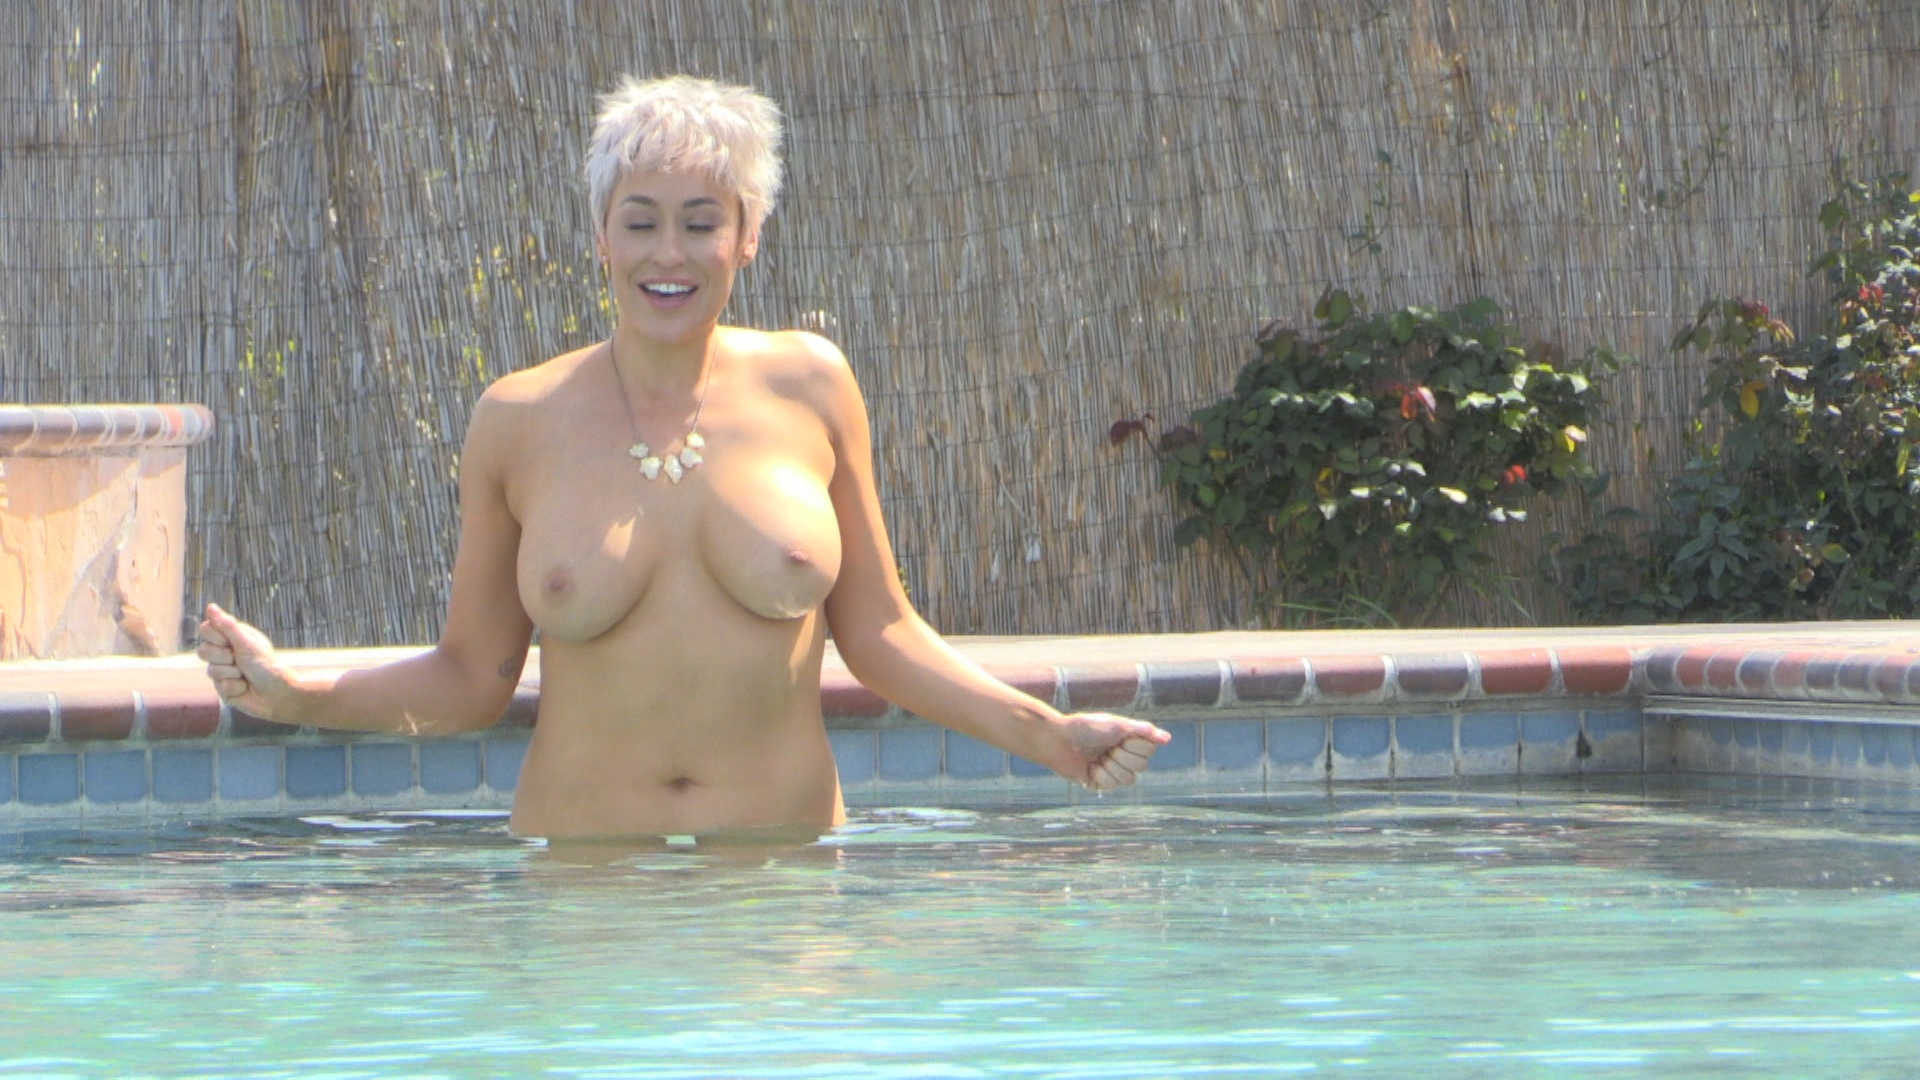 Busty Mature Lady Having Fun in Swimming Pool